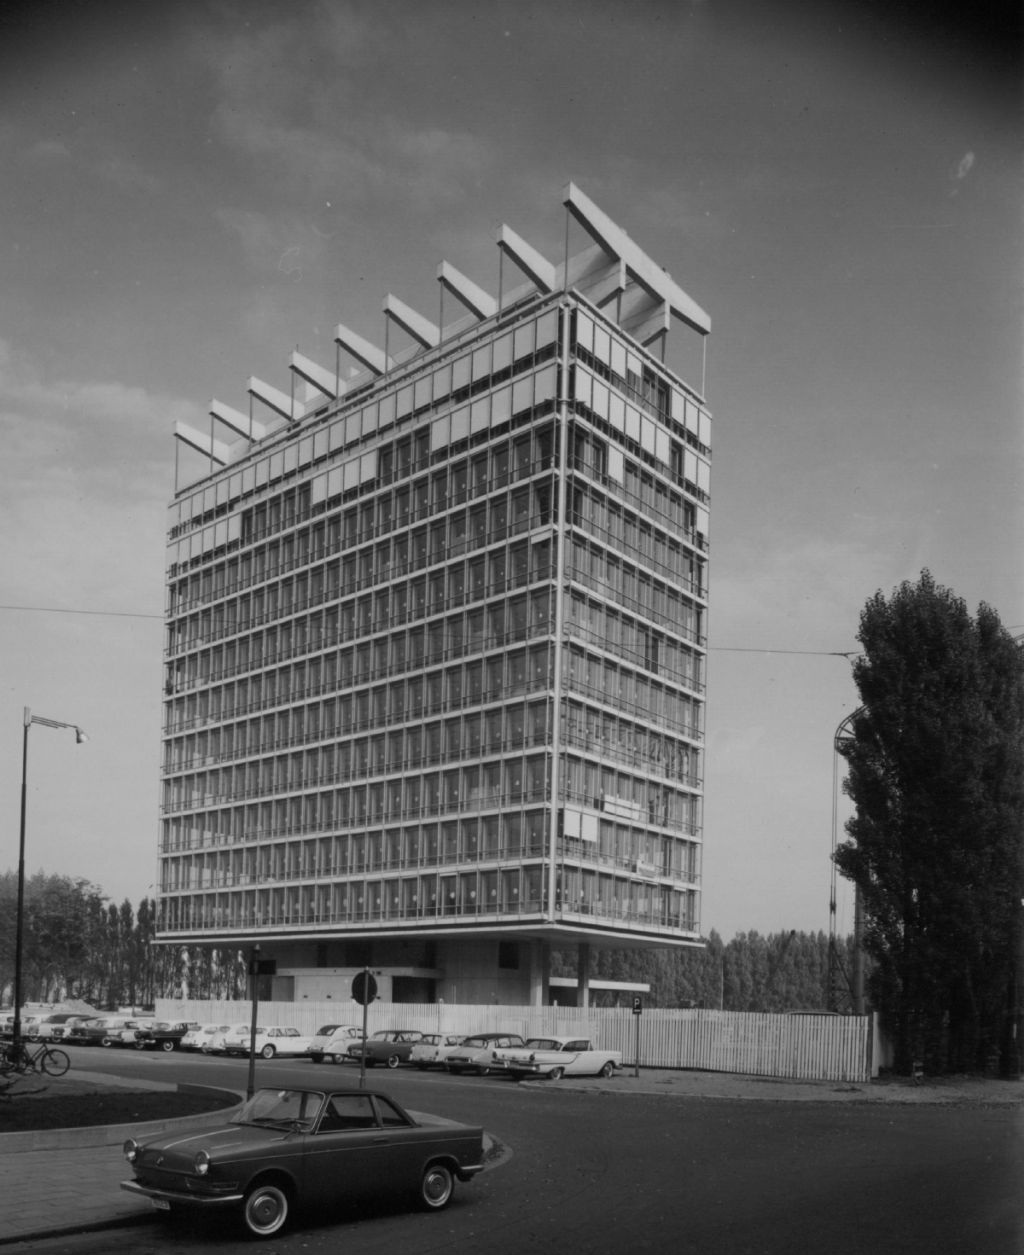 BP-building, 19560, Léon Stynen i.s.m. Paul De Meyer